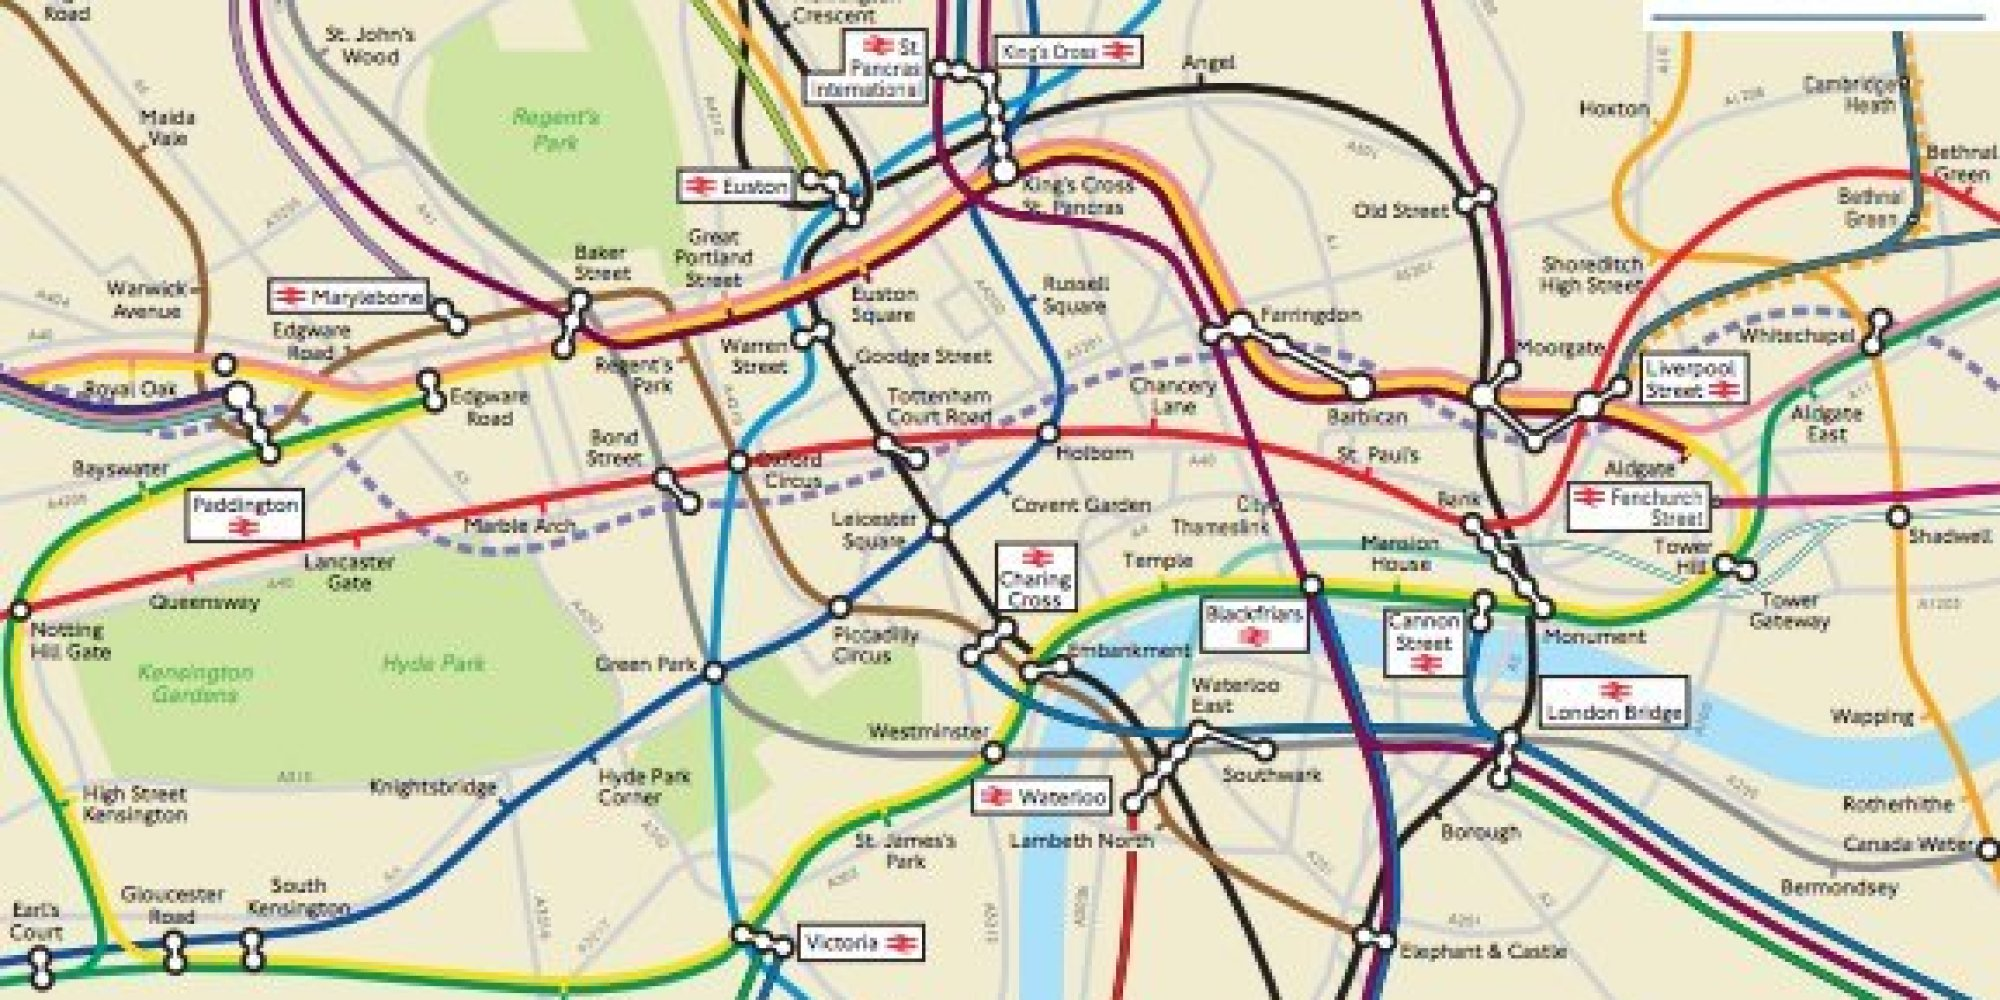 London Underground: Geographically Accurate Map Obtained By Freedom Of ...